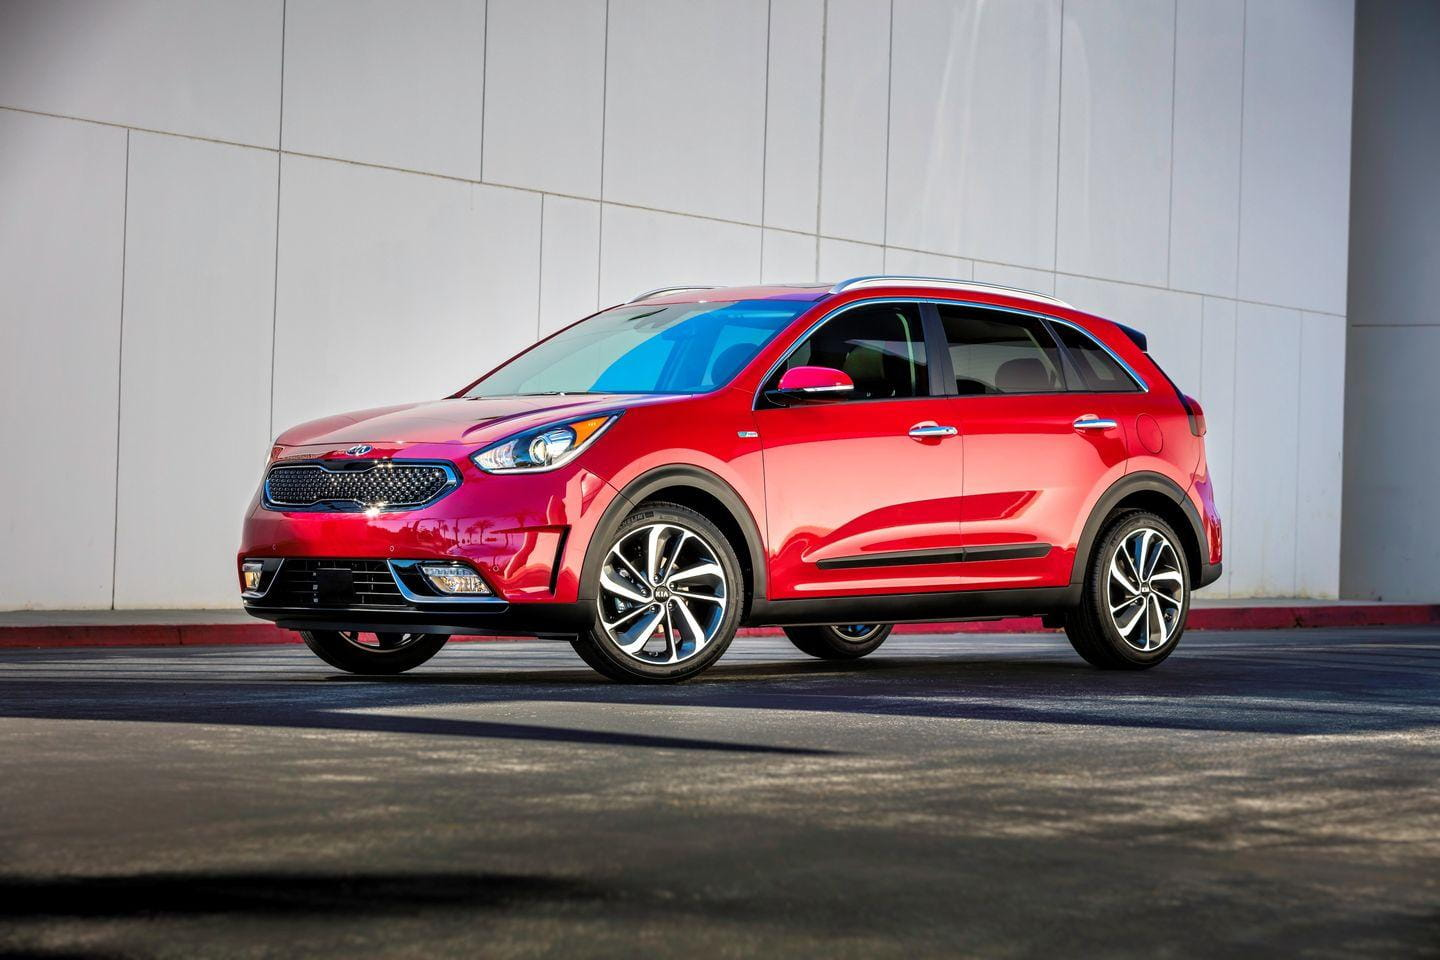 kia niro el primer h brido dedicado en forma de crossover en 4 claves diariomotor. Black Bedroom Furniture Sets. Home Design Ideas